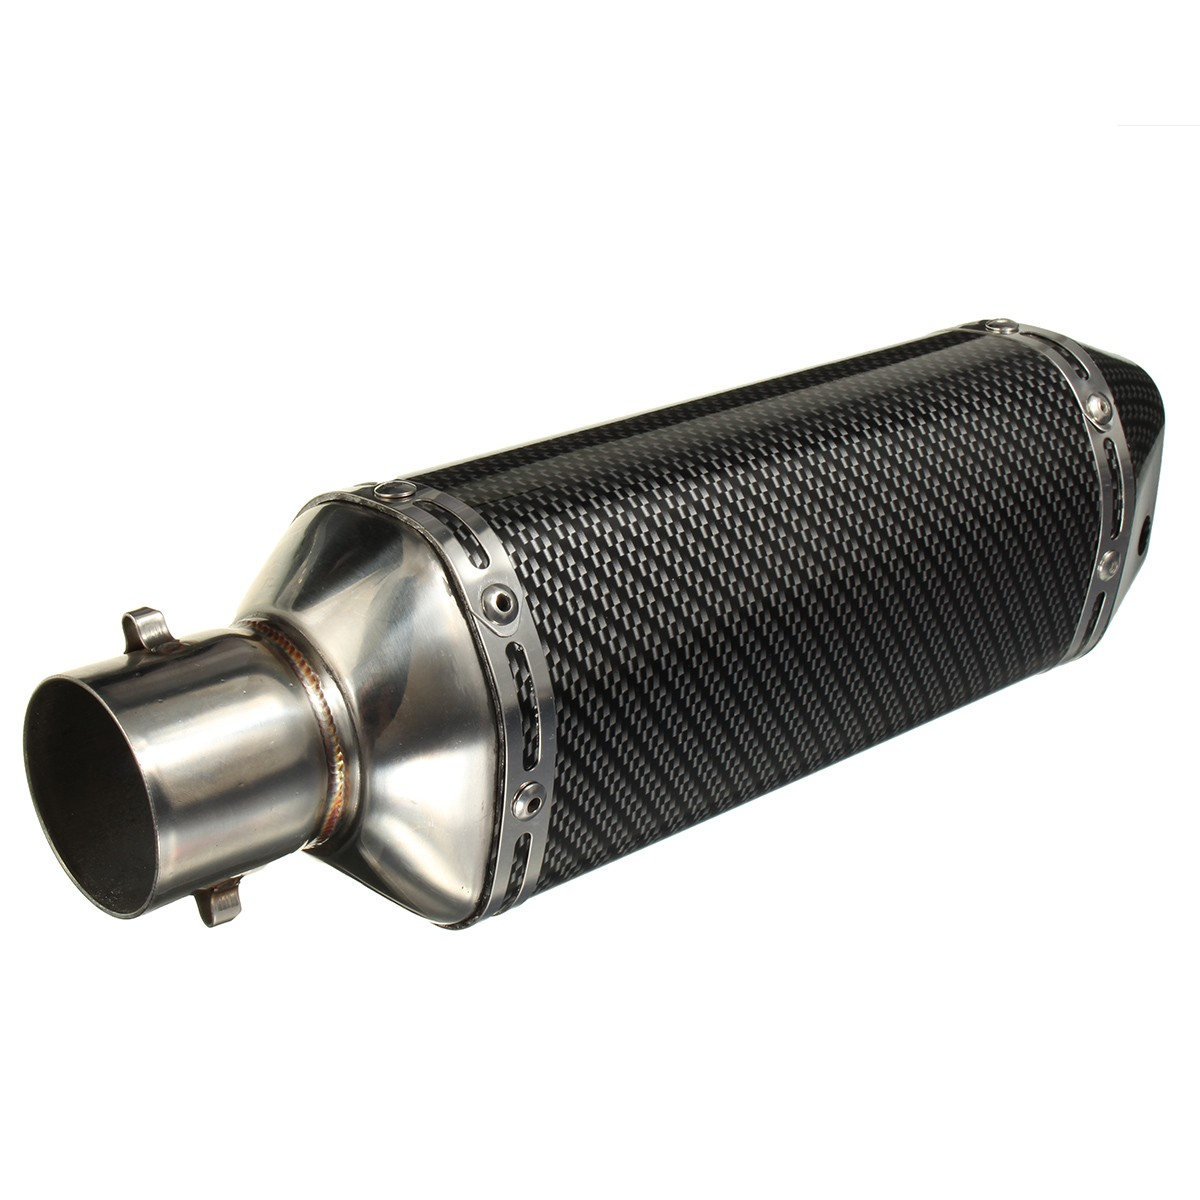 51mm Universal Carbon Fiber Color Motorcycle Exhaust Muffler Pipe For Dirt Bike Street Bike Scooter ATV Quad laser mark universial motorcycle motorcross dirt bike modified muffler sc carbon fiber exhaust pipe 61mm 51mm with connector